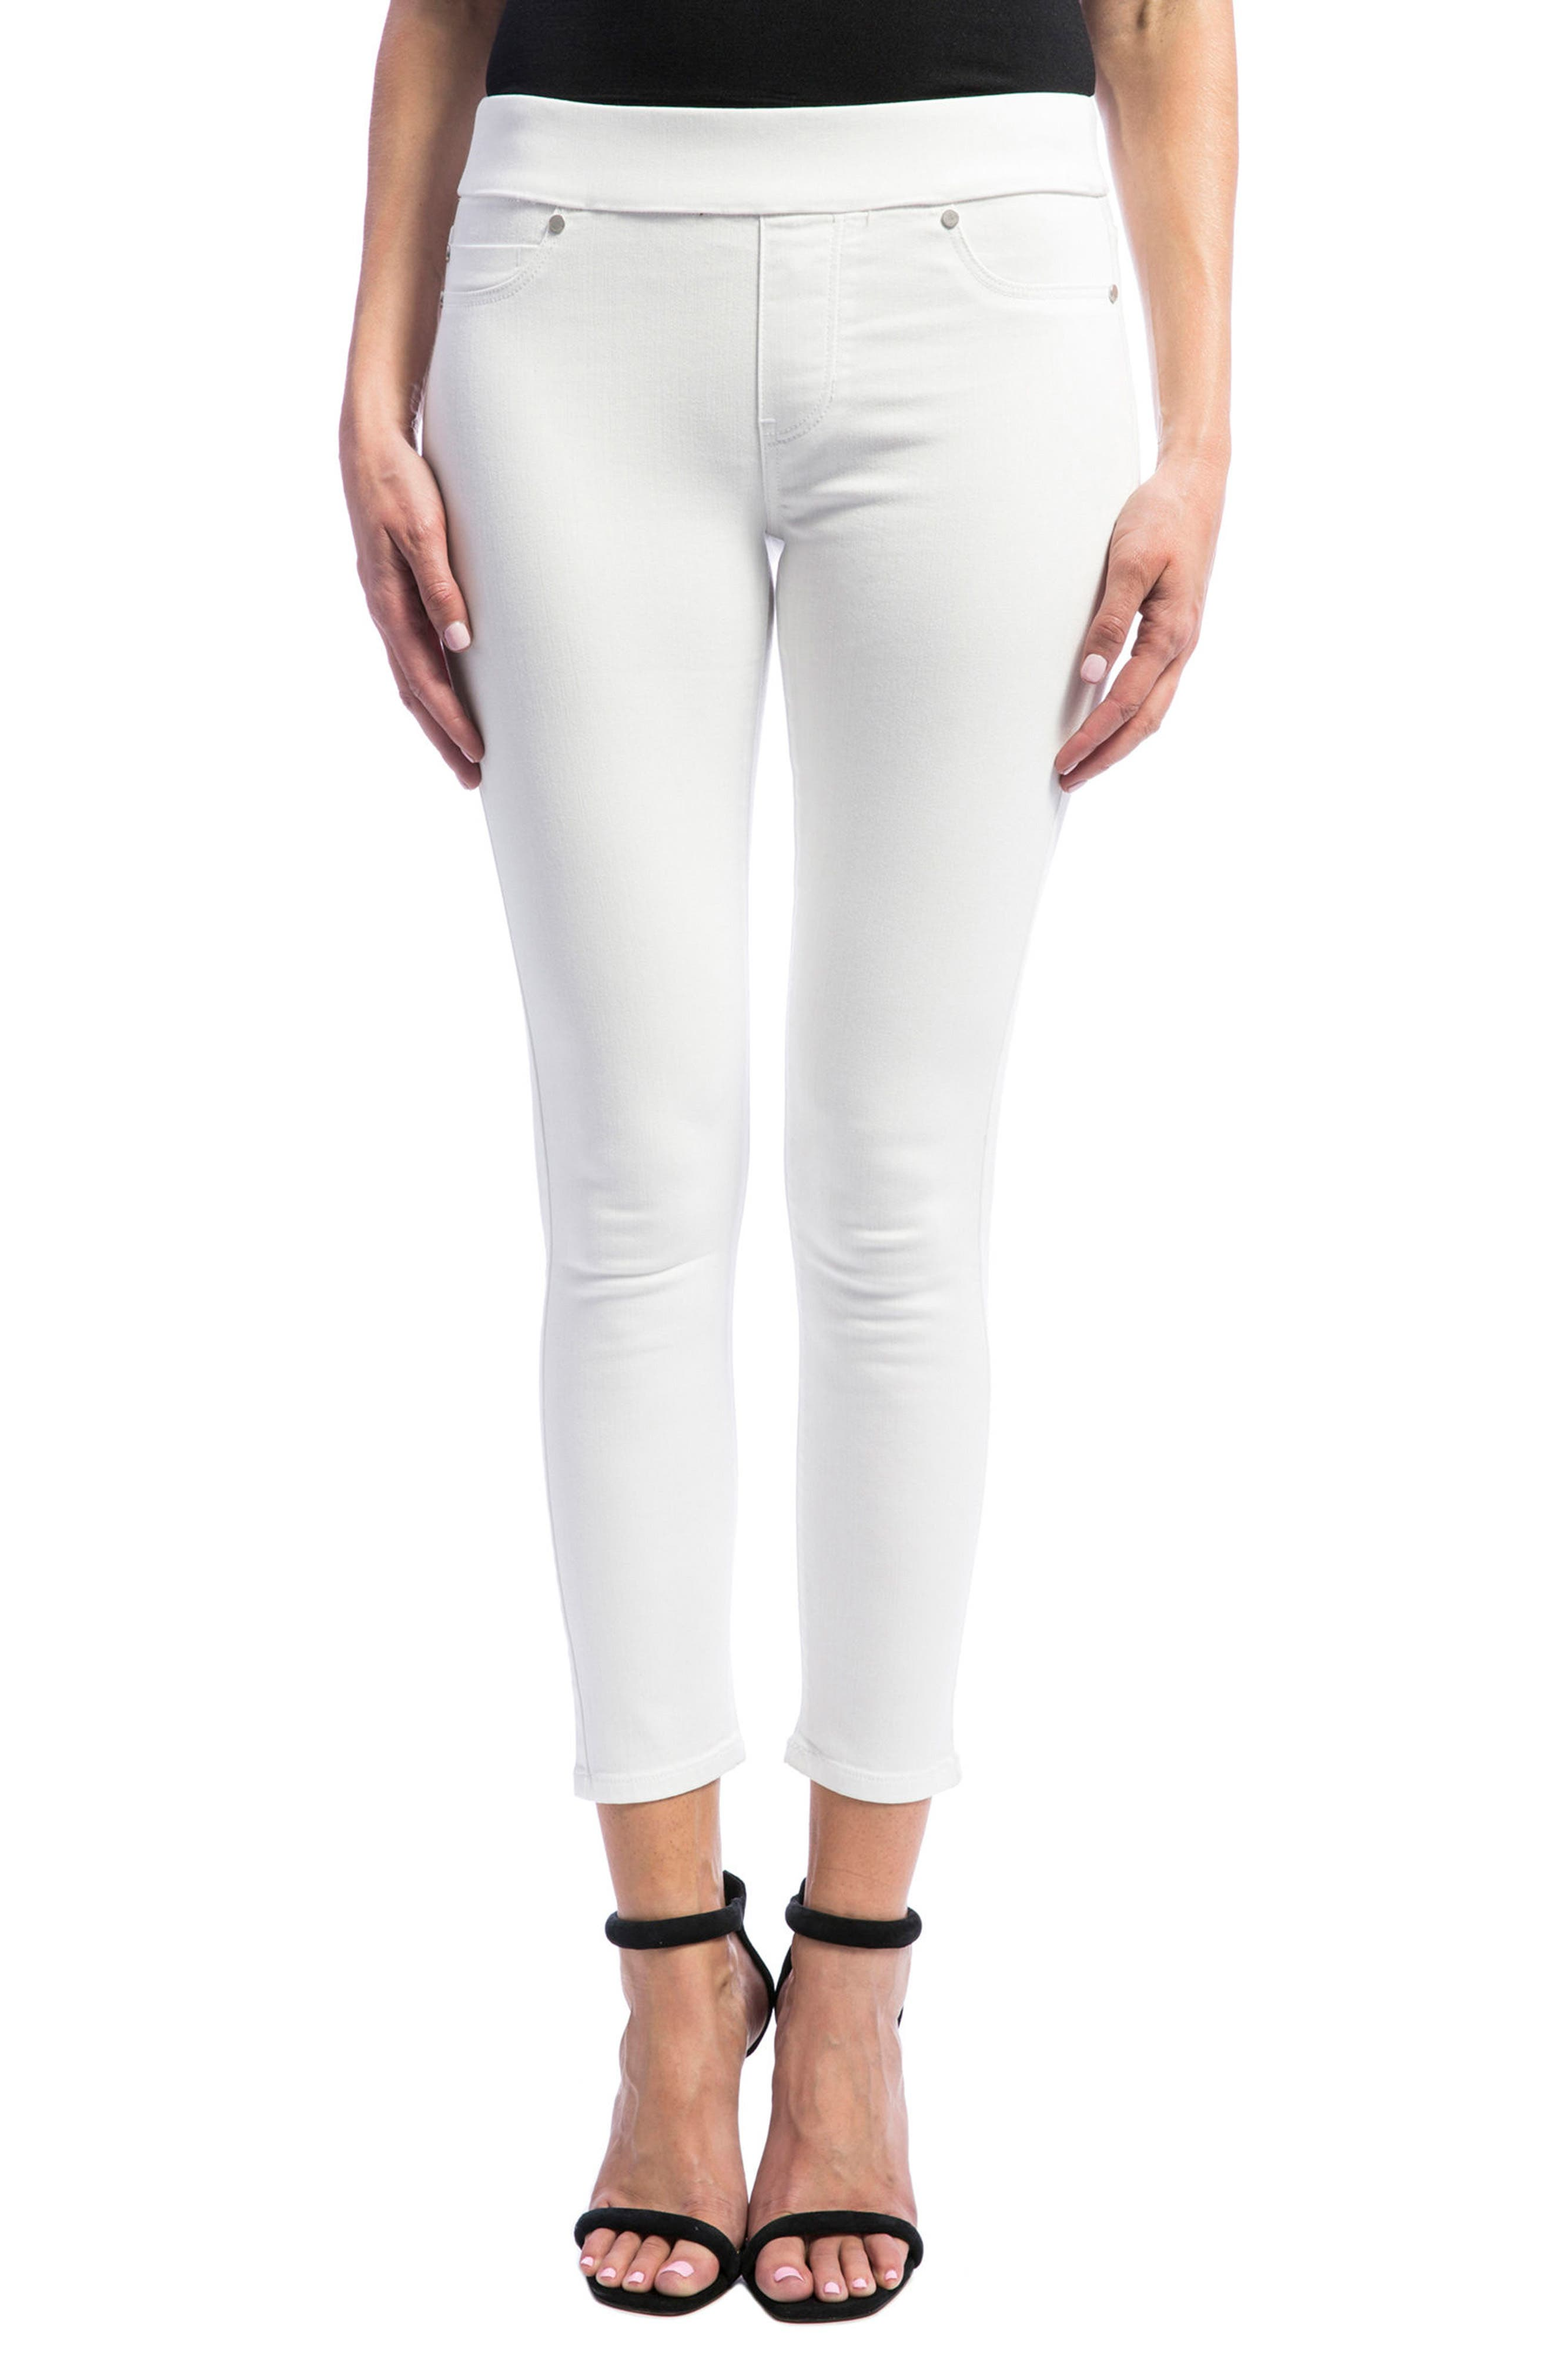 Liverpool Jeans Company Sienna Pull-On Stretch Skinny Ankle Jeans (Regular & Petite)